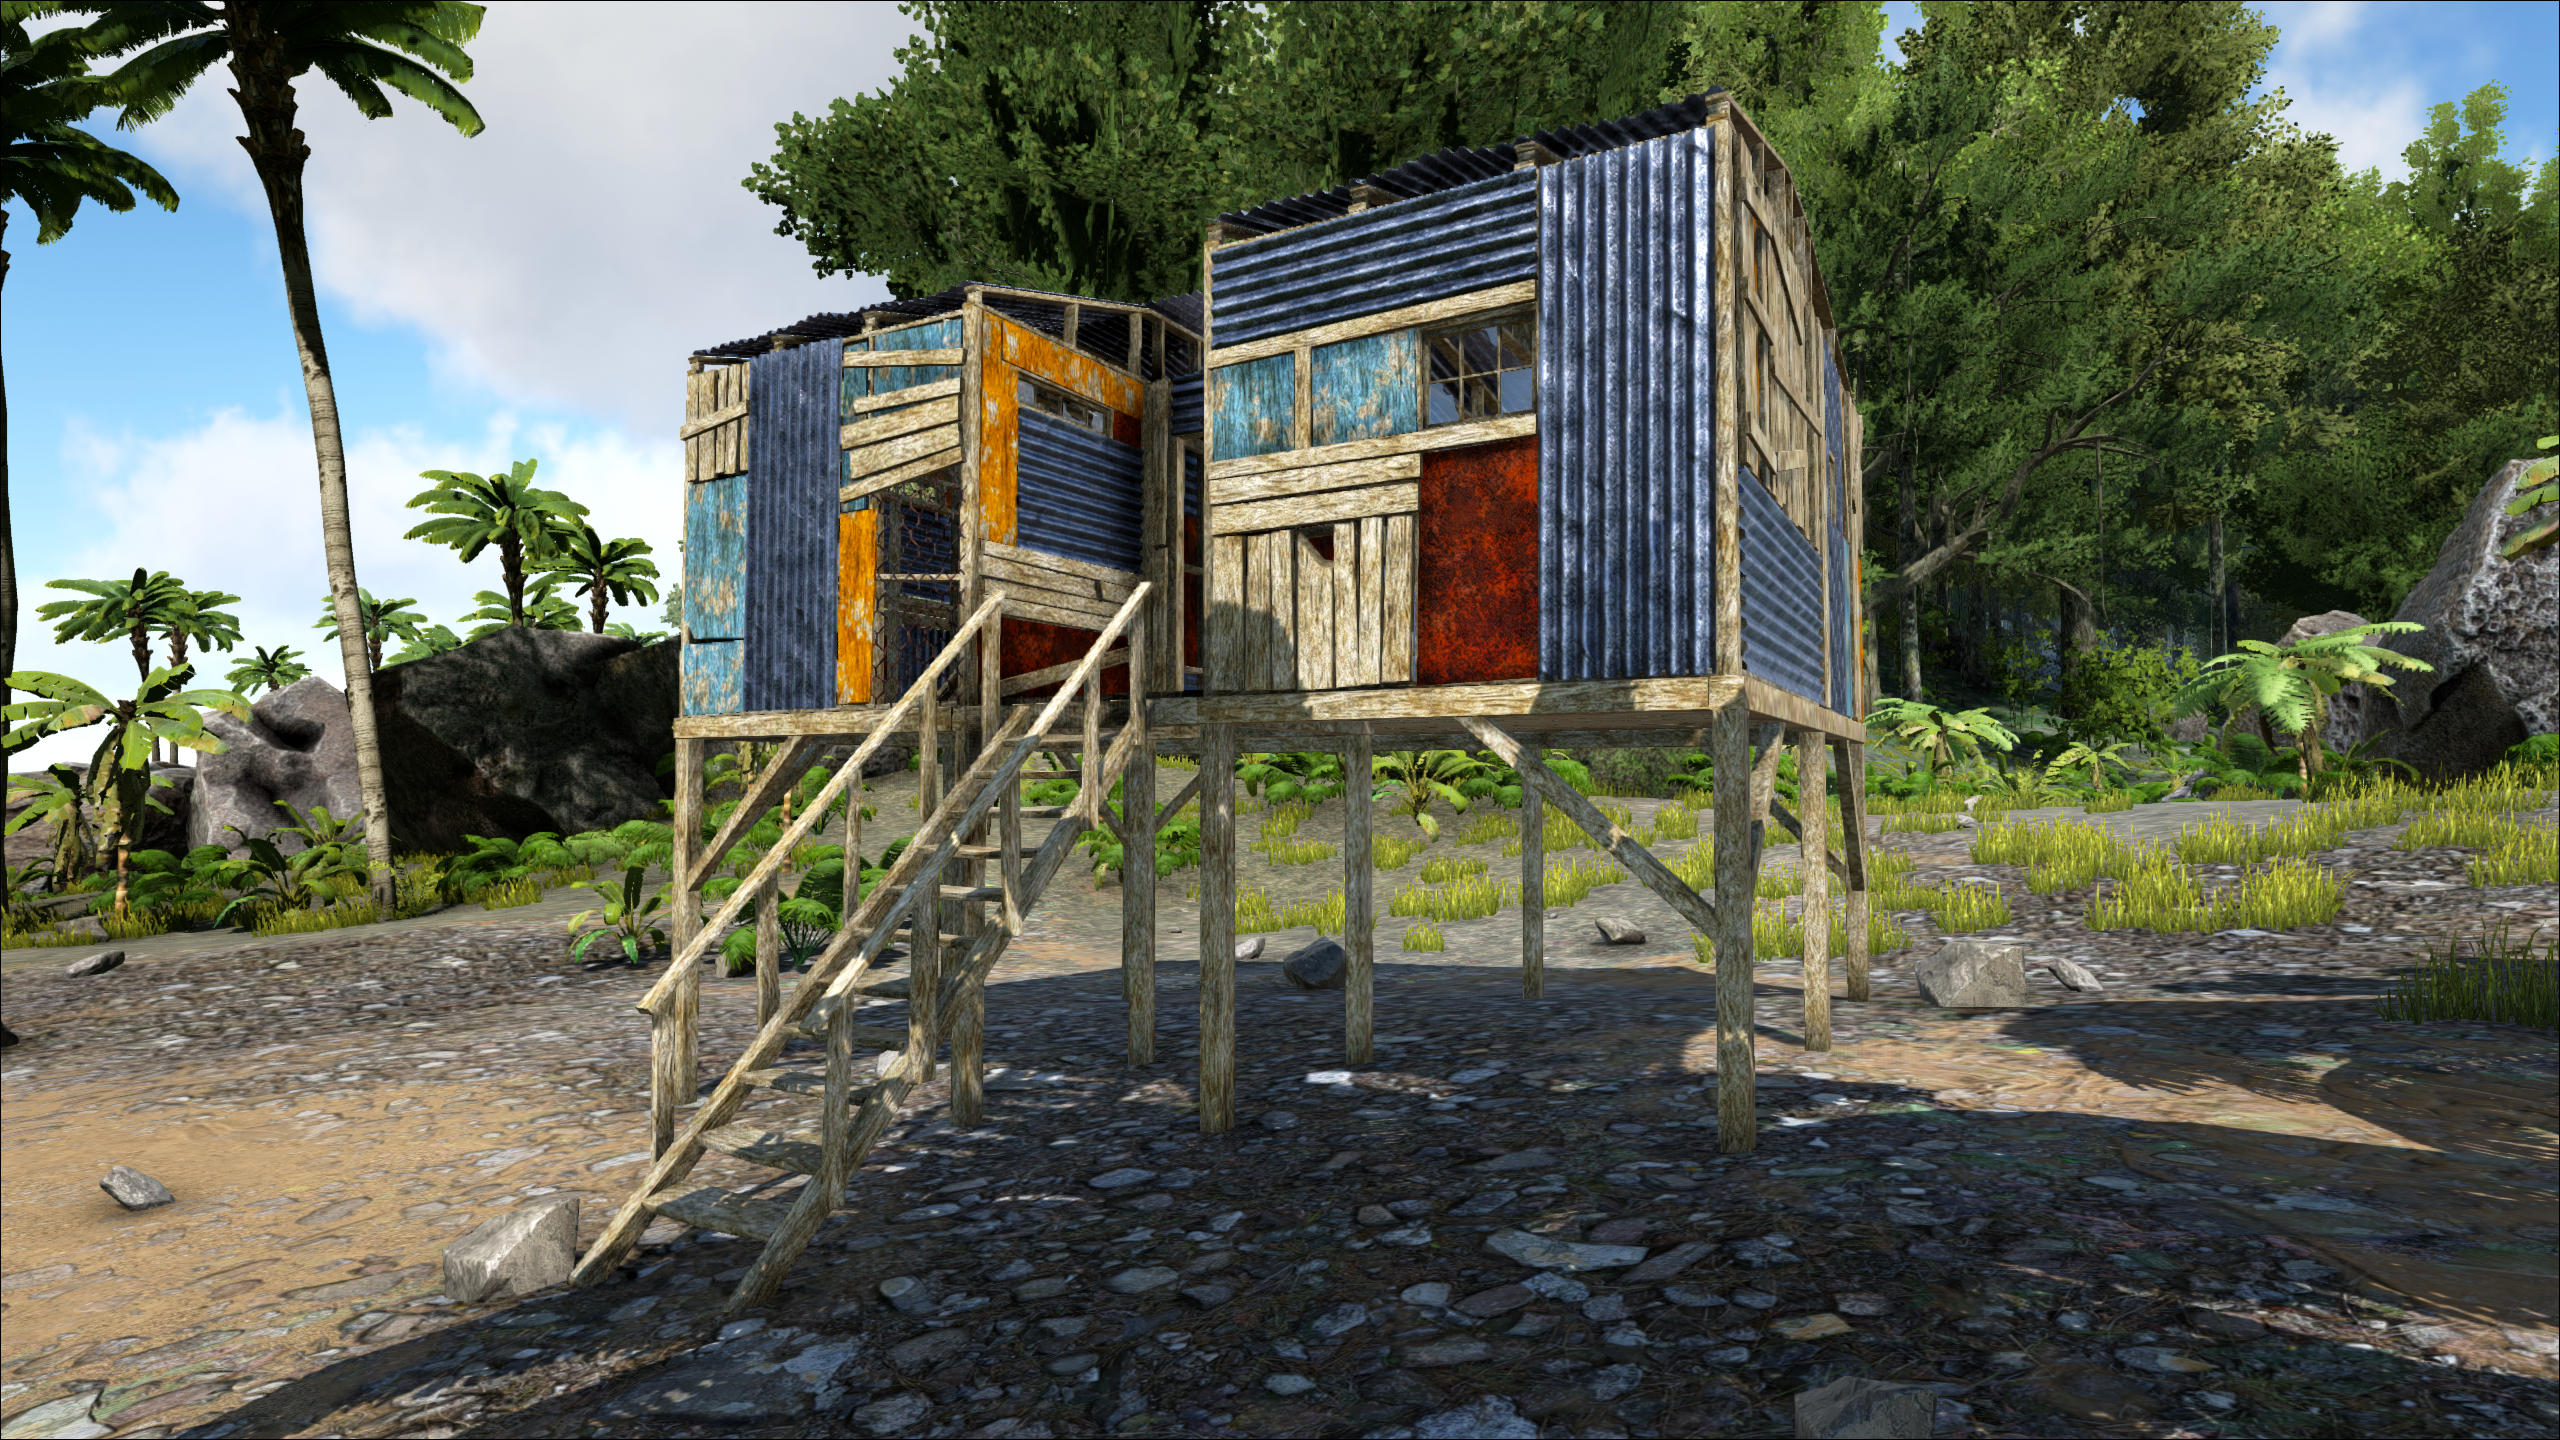 A Shanty Prefab on the Ark: The Island